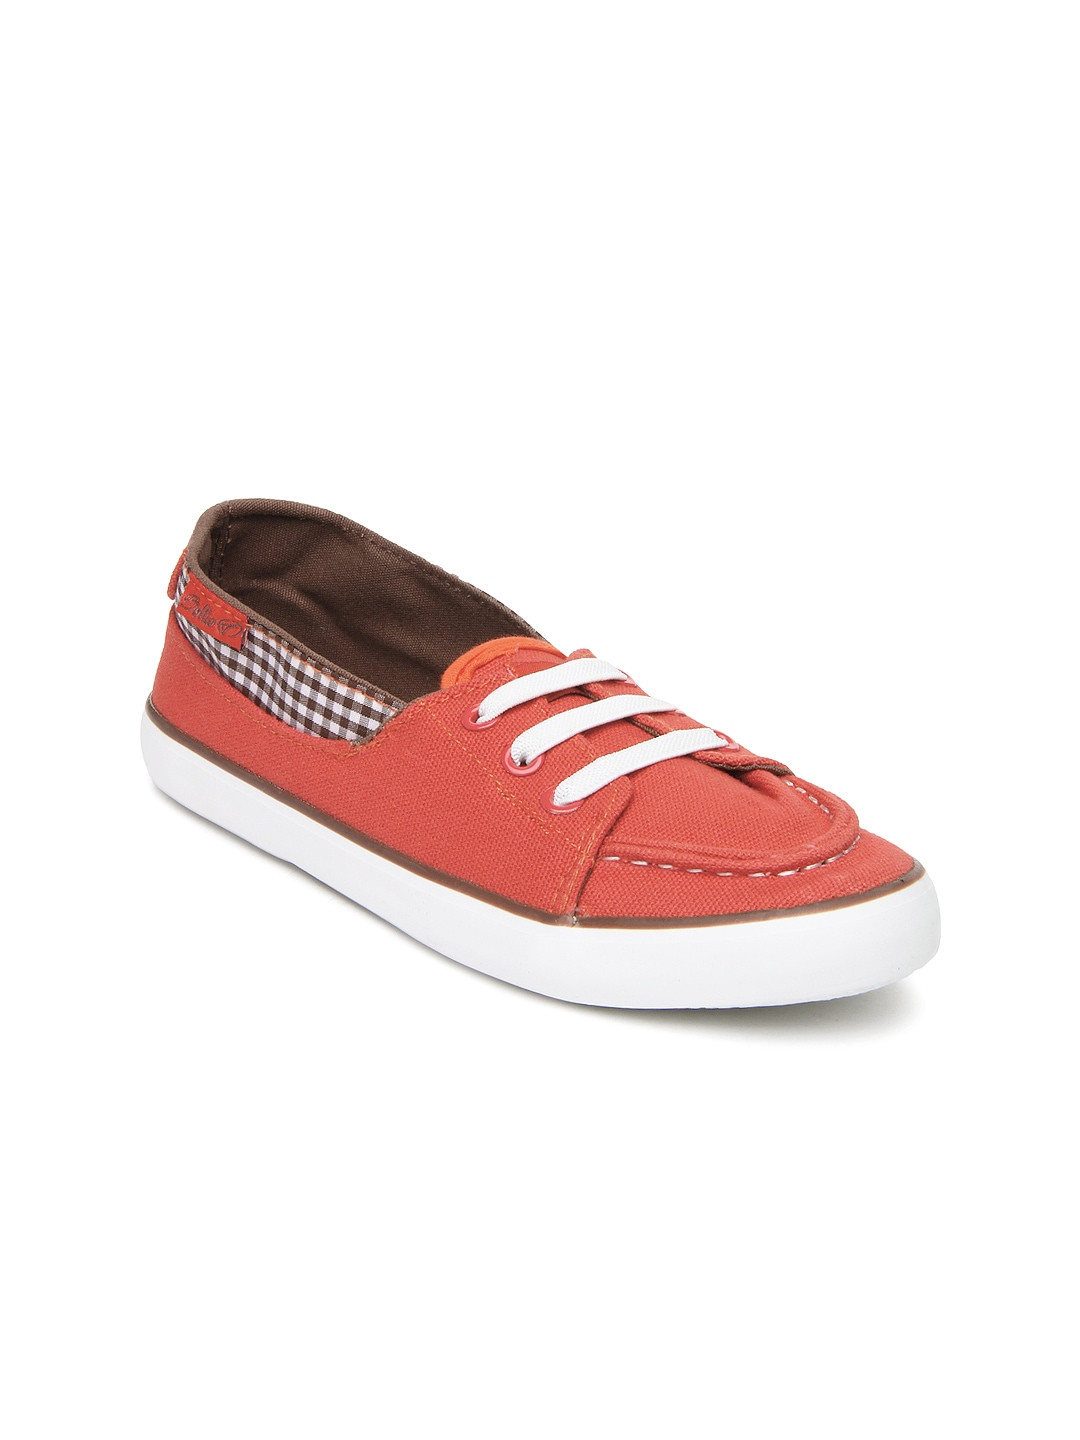 home footwear footwear casual shoes boltio casual shoes